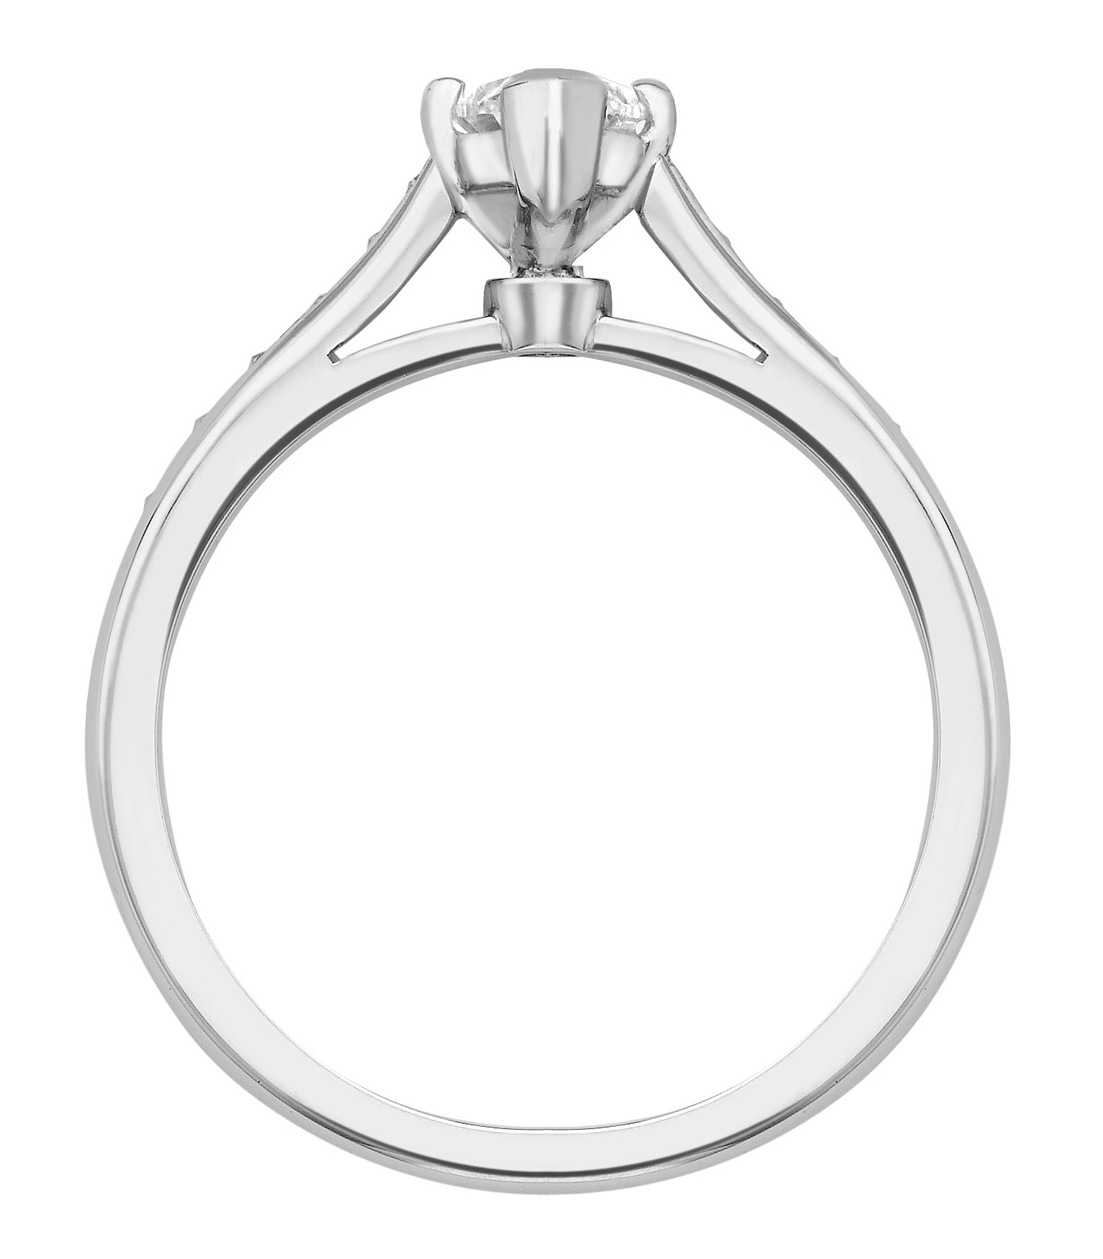 Marquise Cut Platinum Ring with Pave Set Shoulders GRC554PLT Image 2